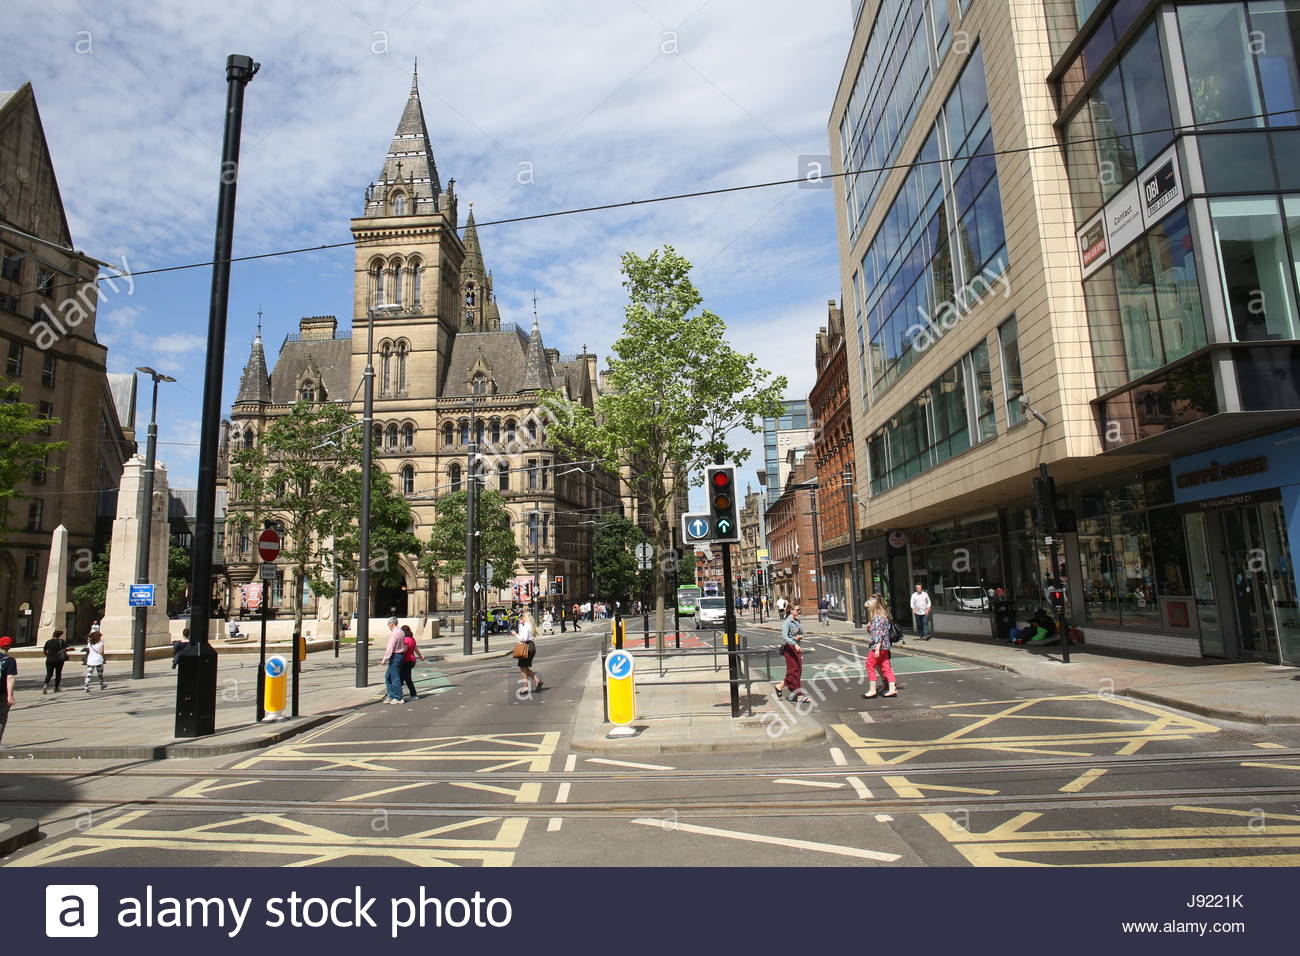 A sunny day in the city of Manchester in the week of the Manchester bombing - Stock Image